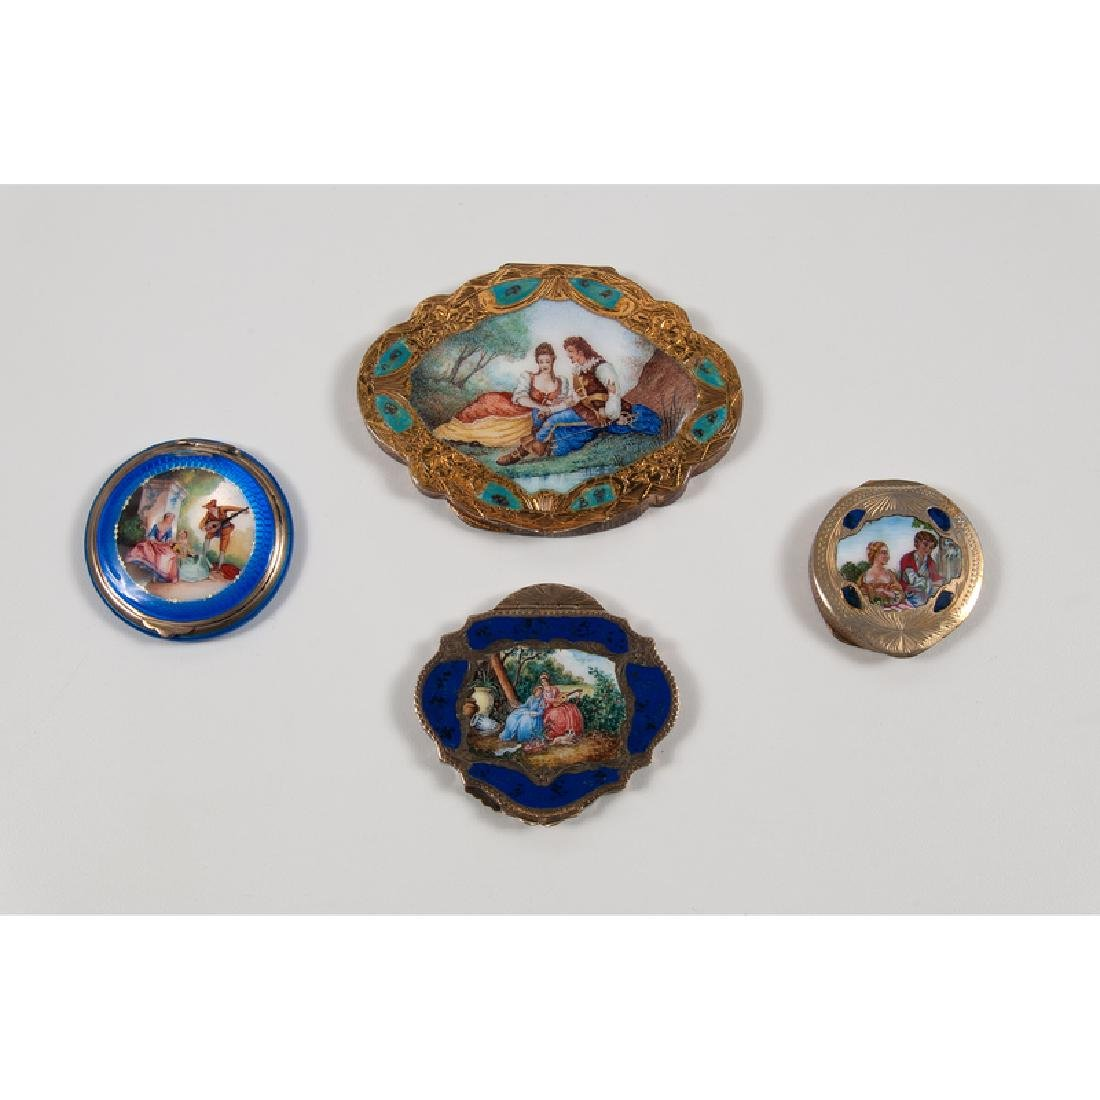 Painted Enamel Compacts